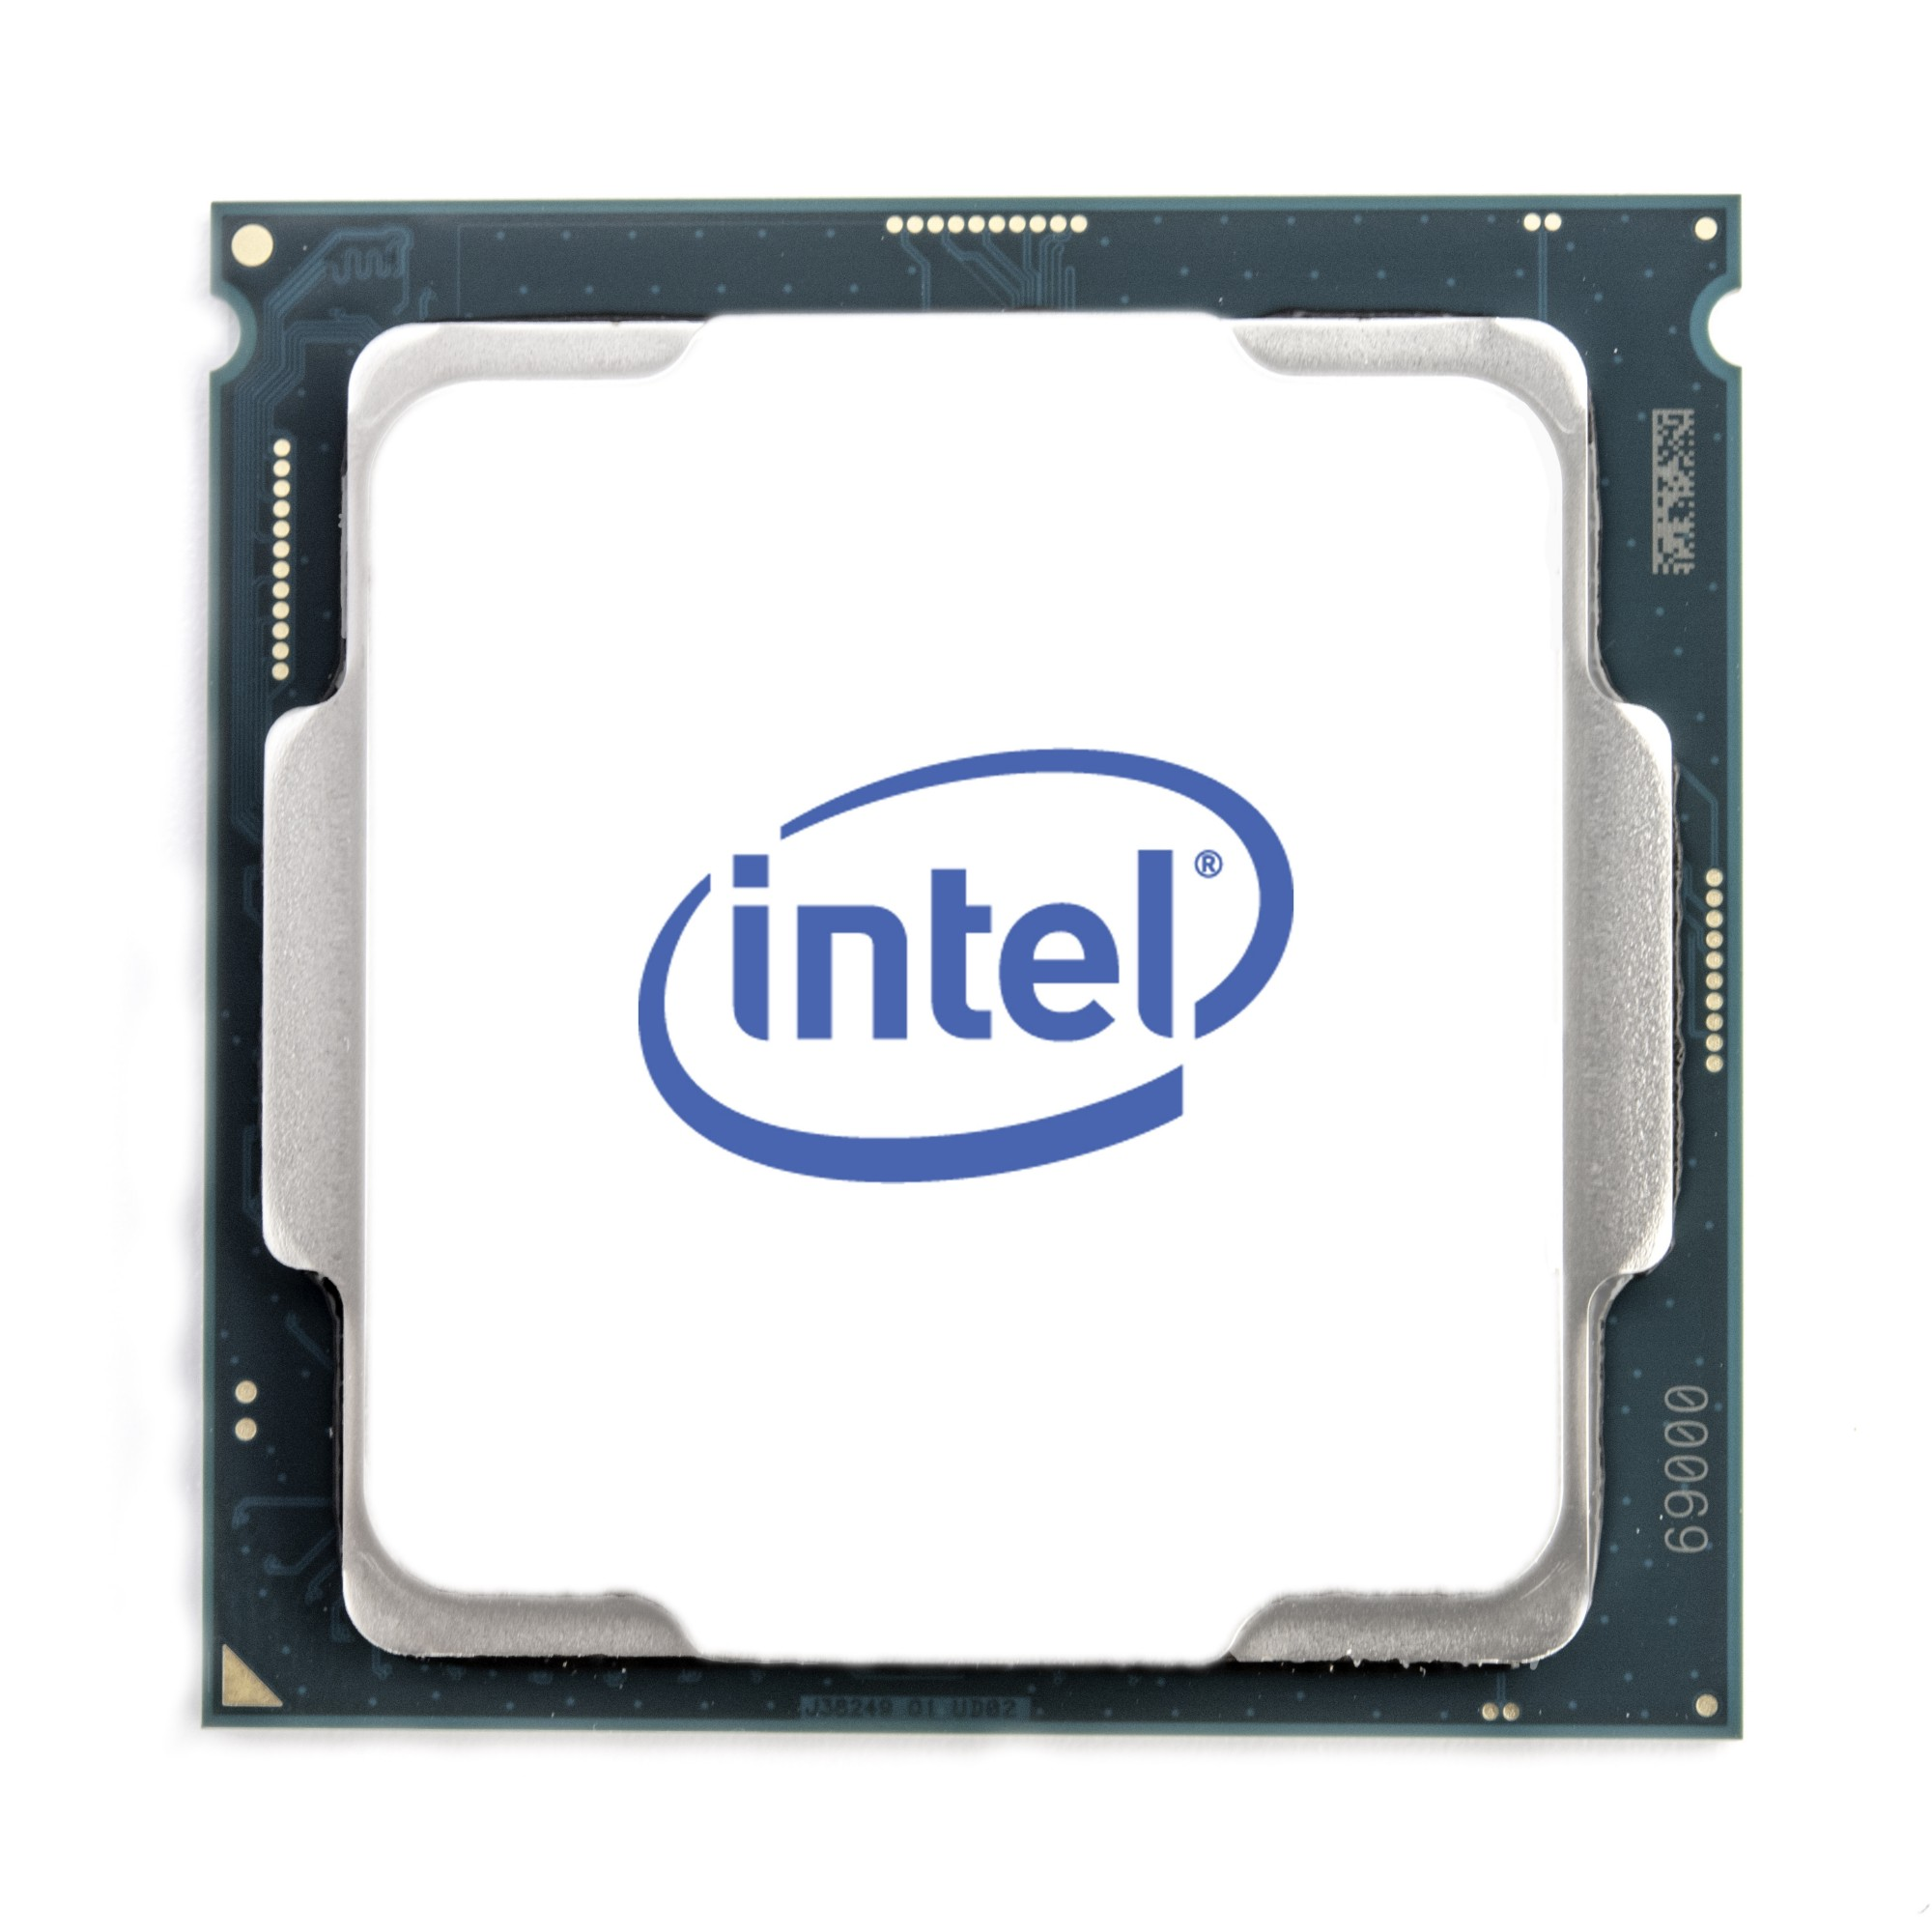 INTEL XEON 6252 PROCESSOR 2.1 GHZ 36 MB